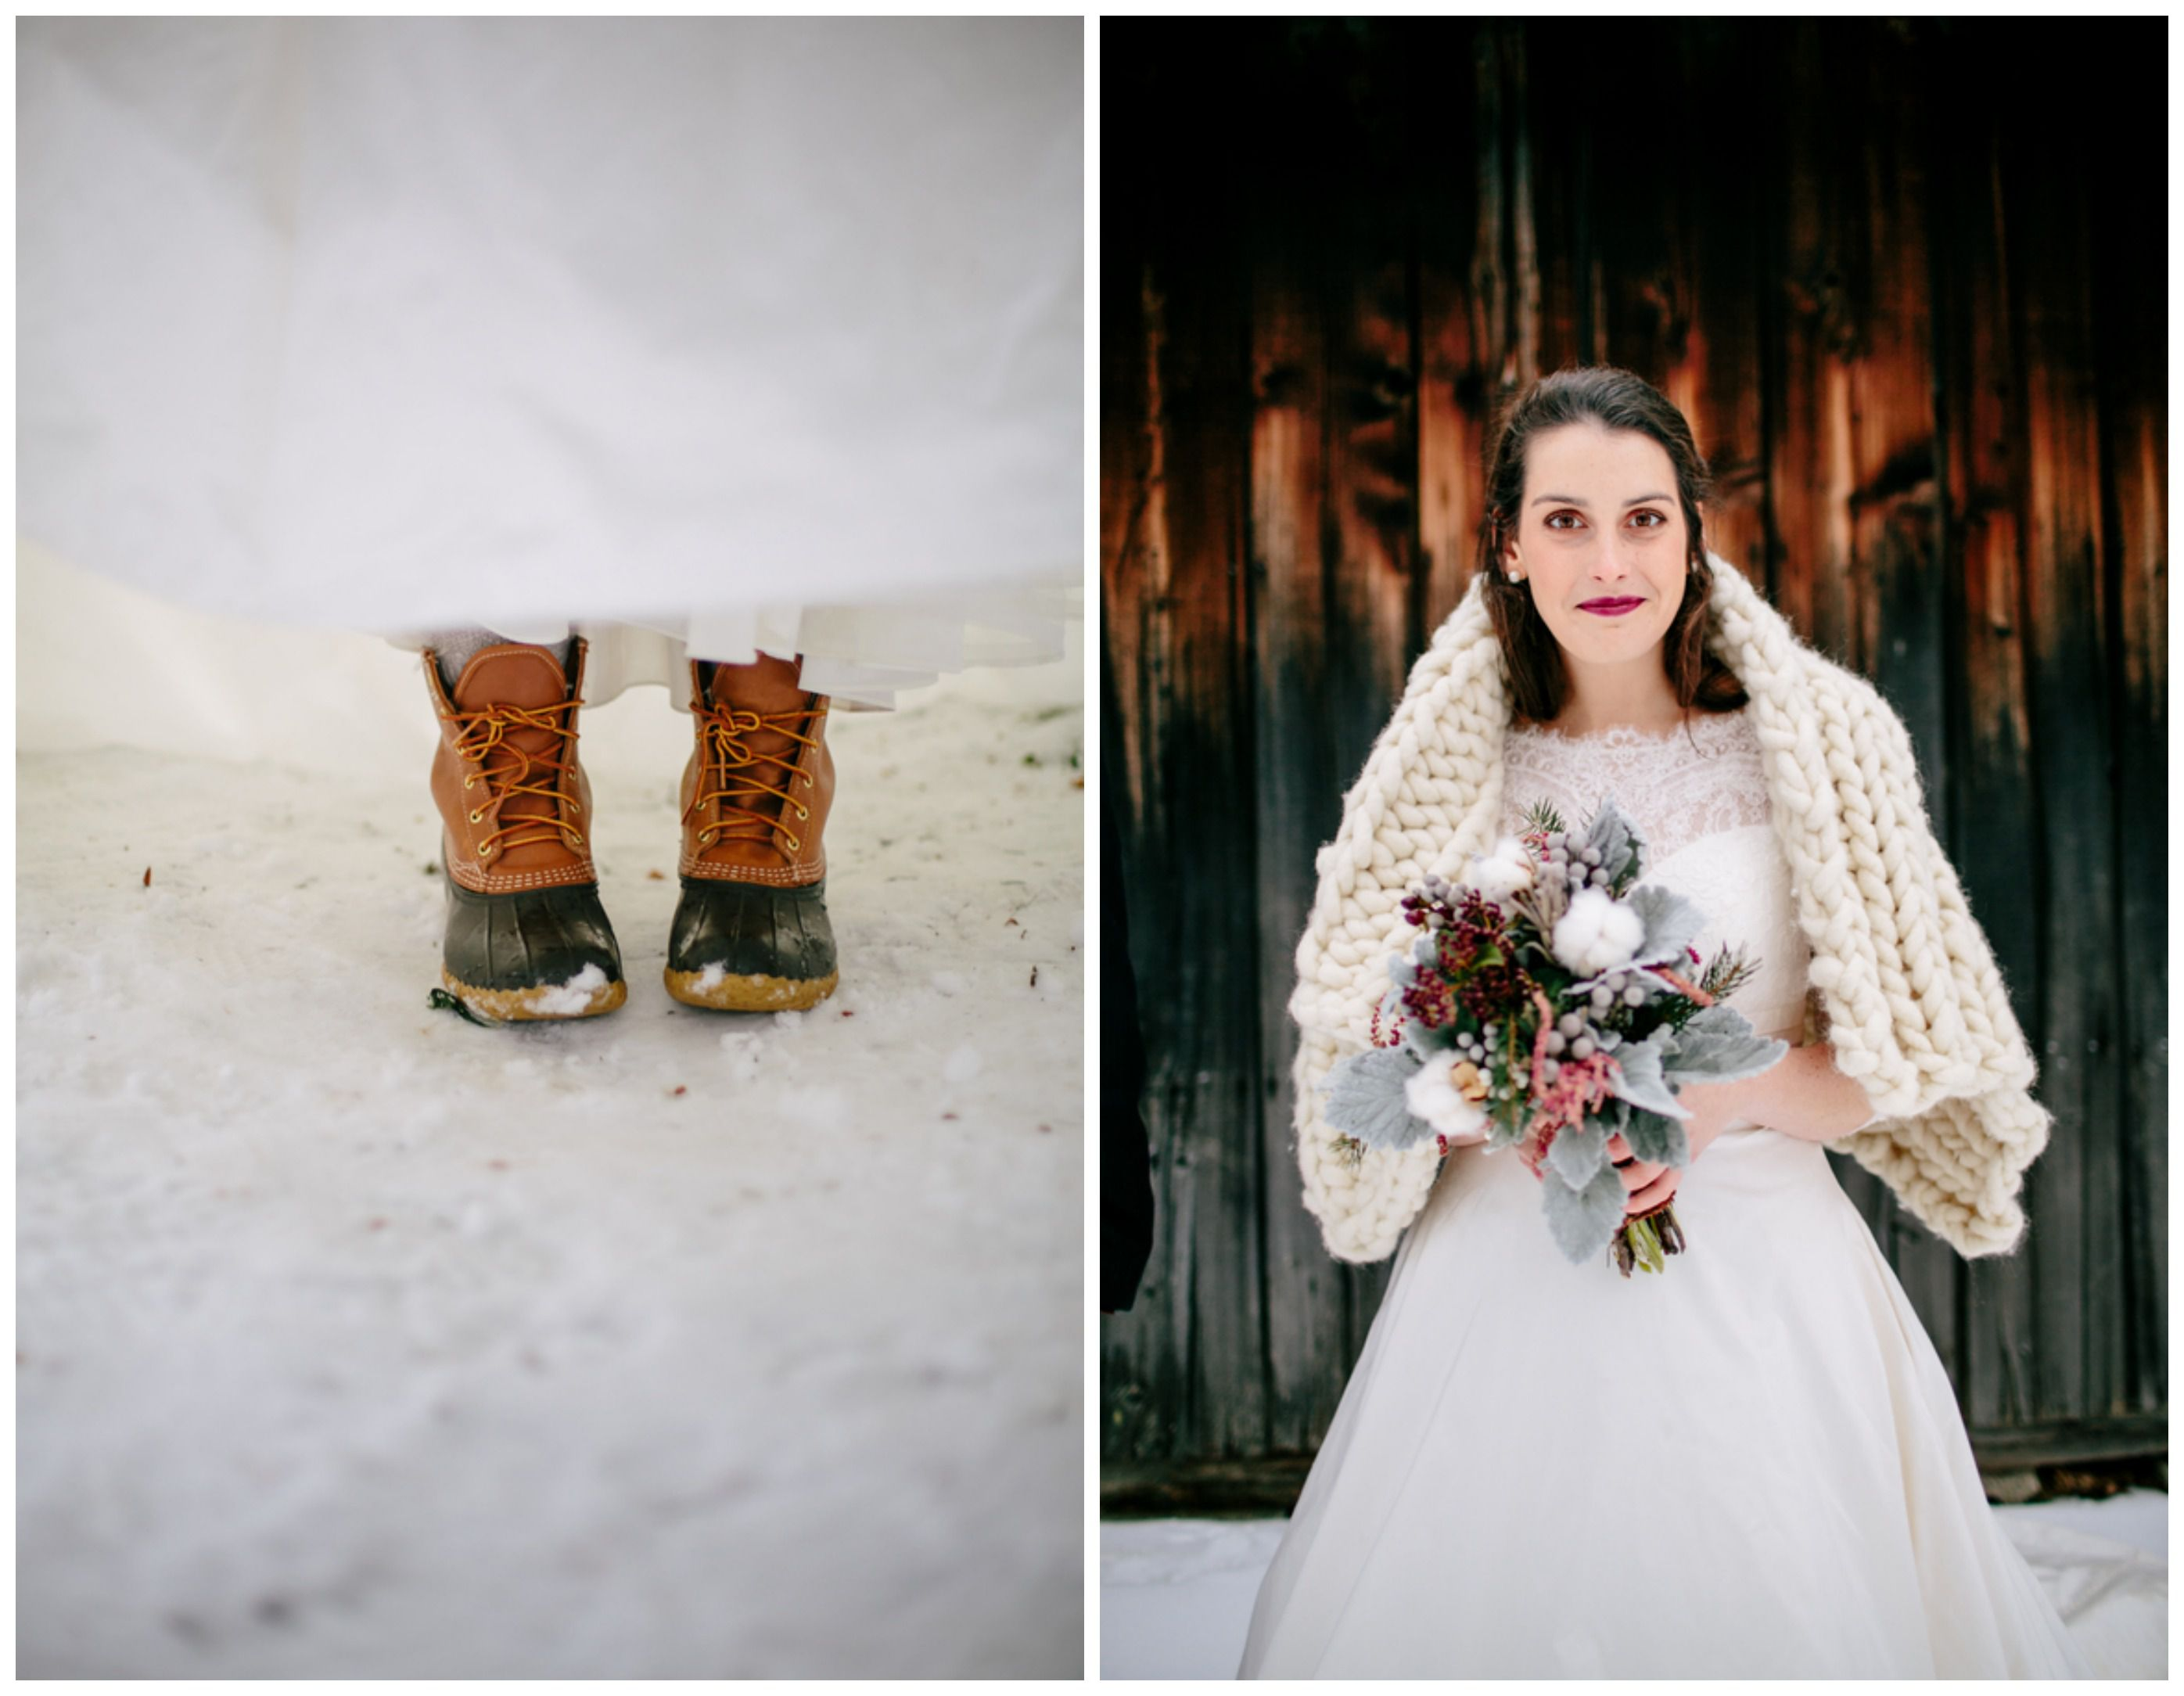 How To Plan A Winter Wedding - Rustic Wedding Chic